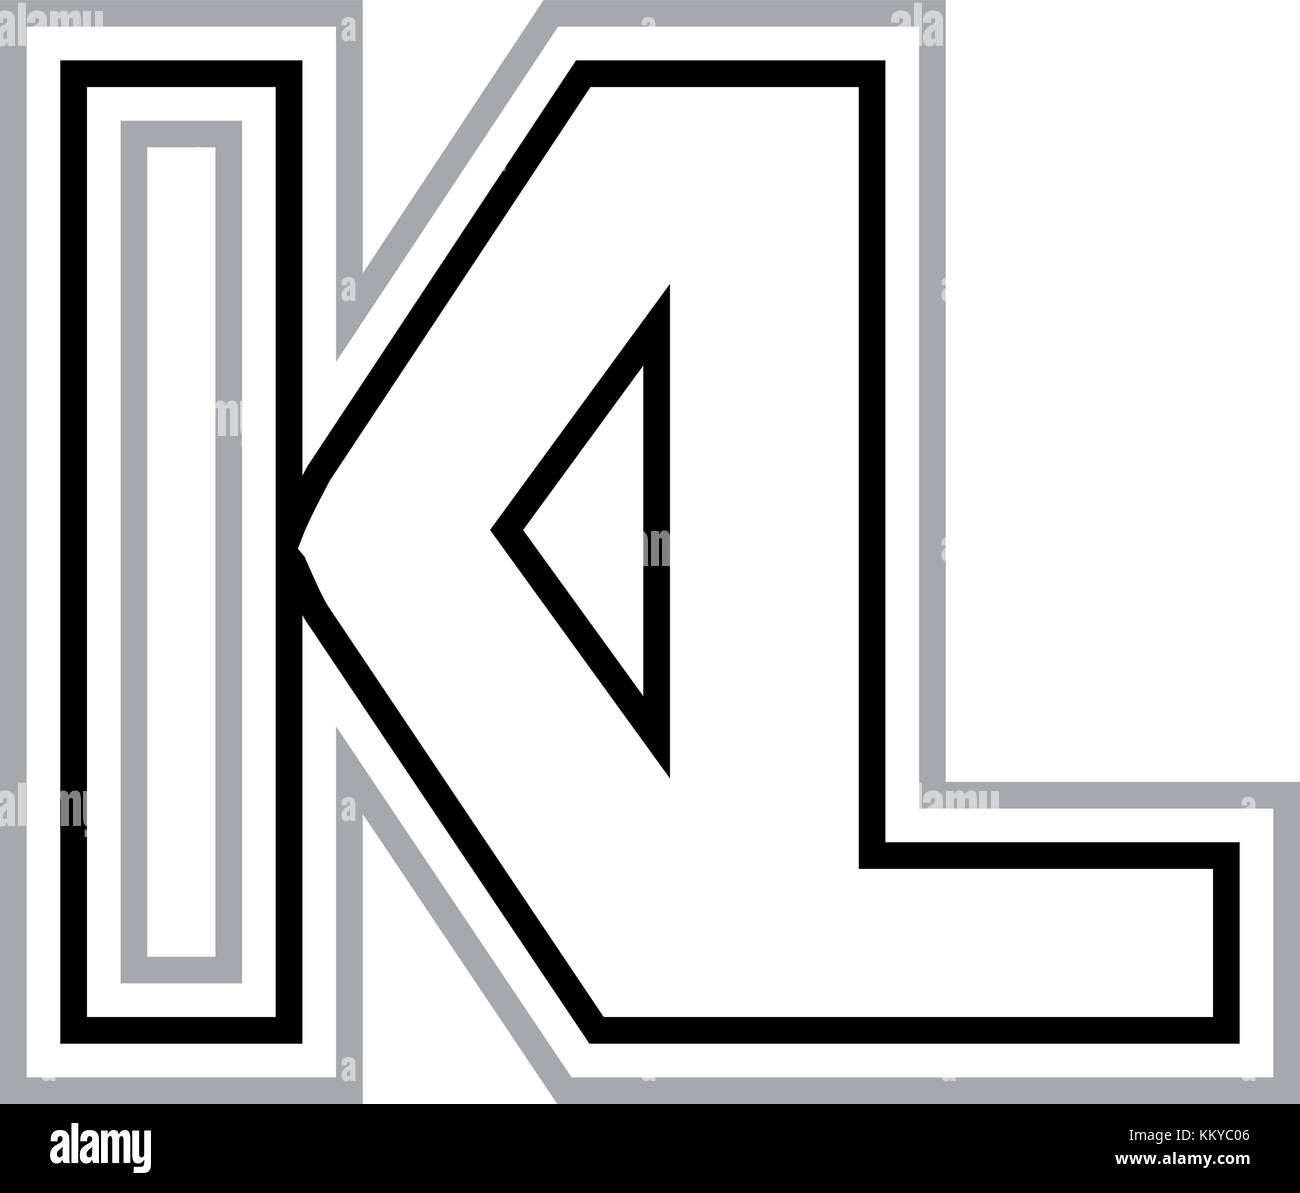 KL Logo in black and gray. Ideal for legal firms. - Stock Vector